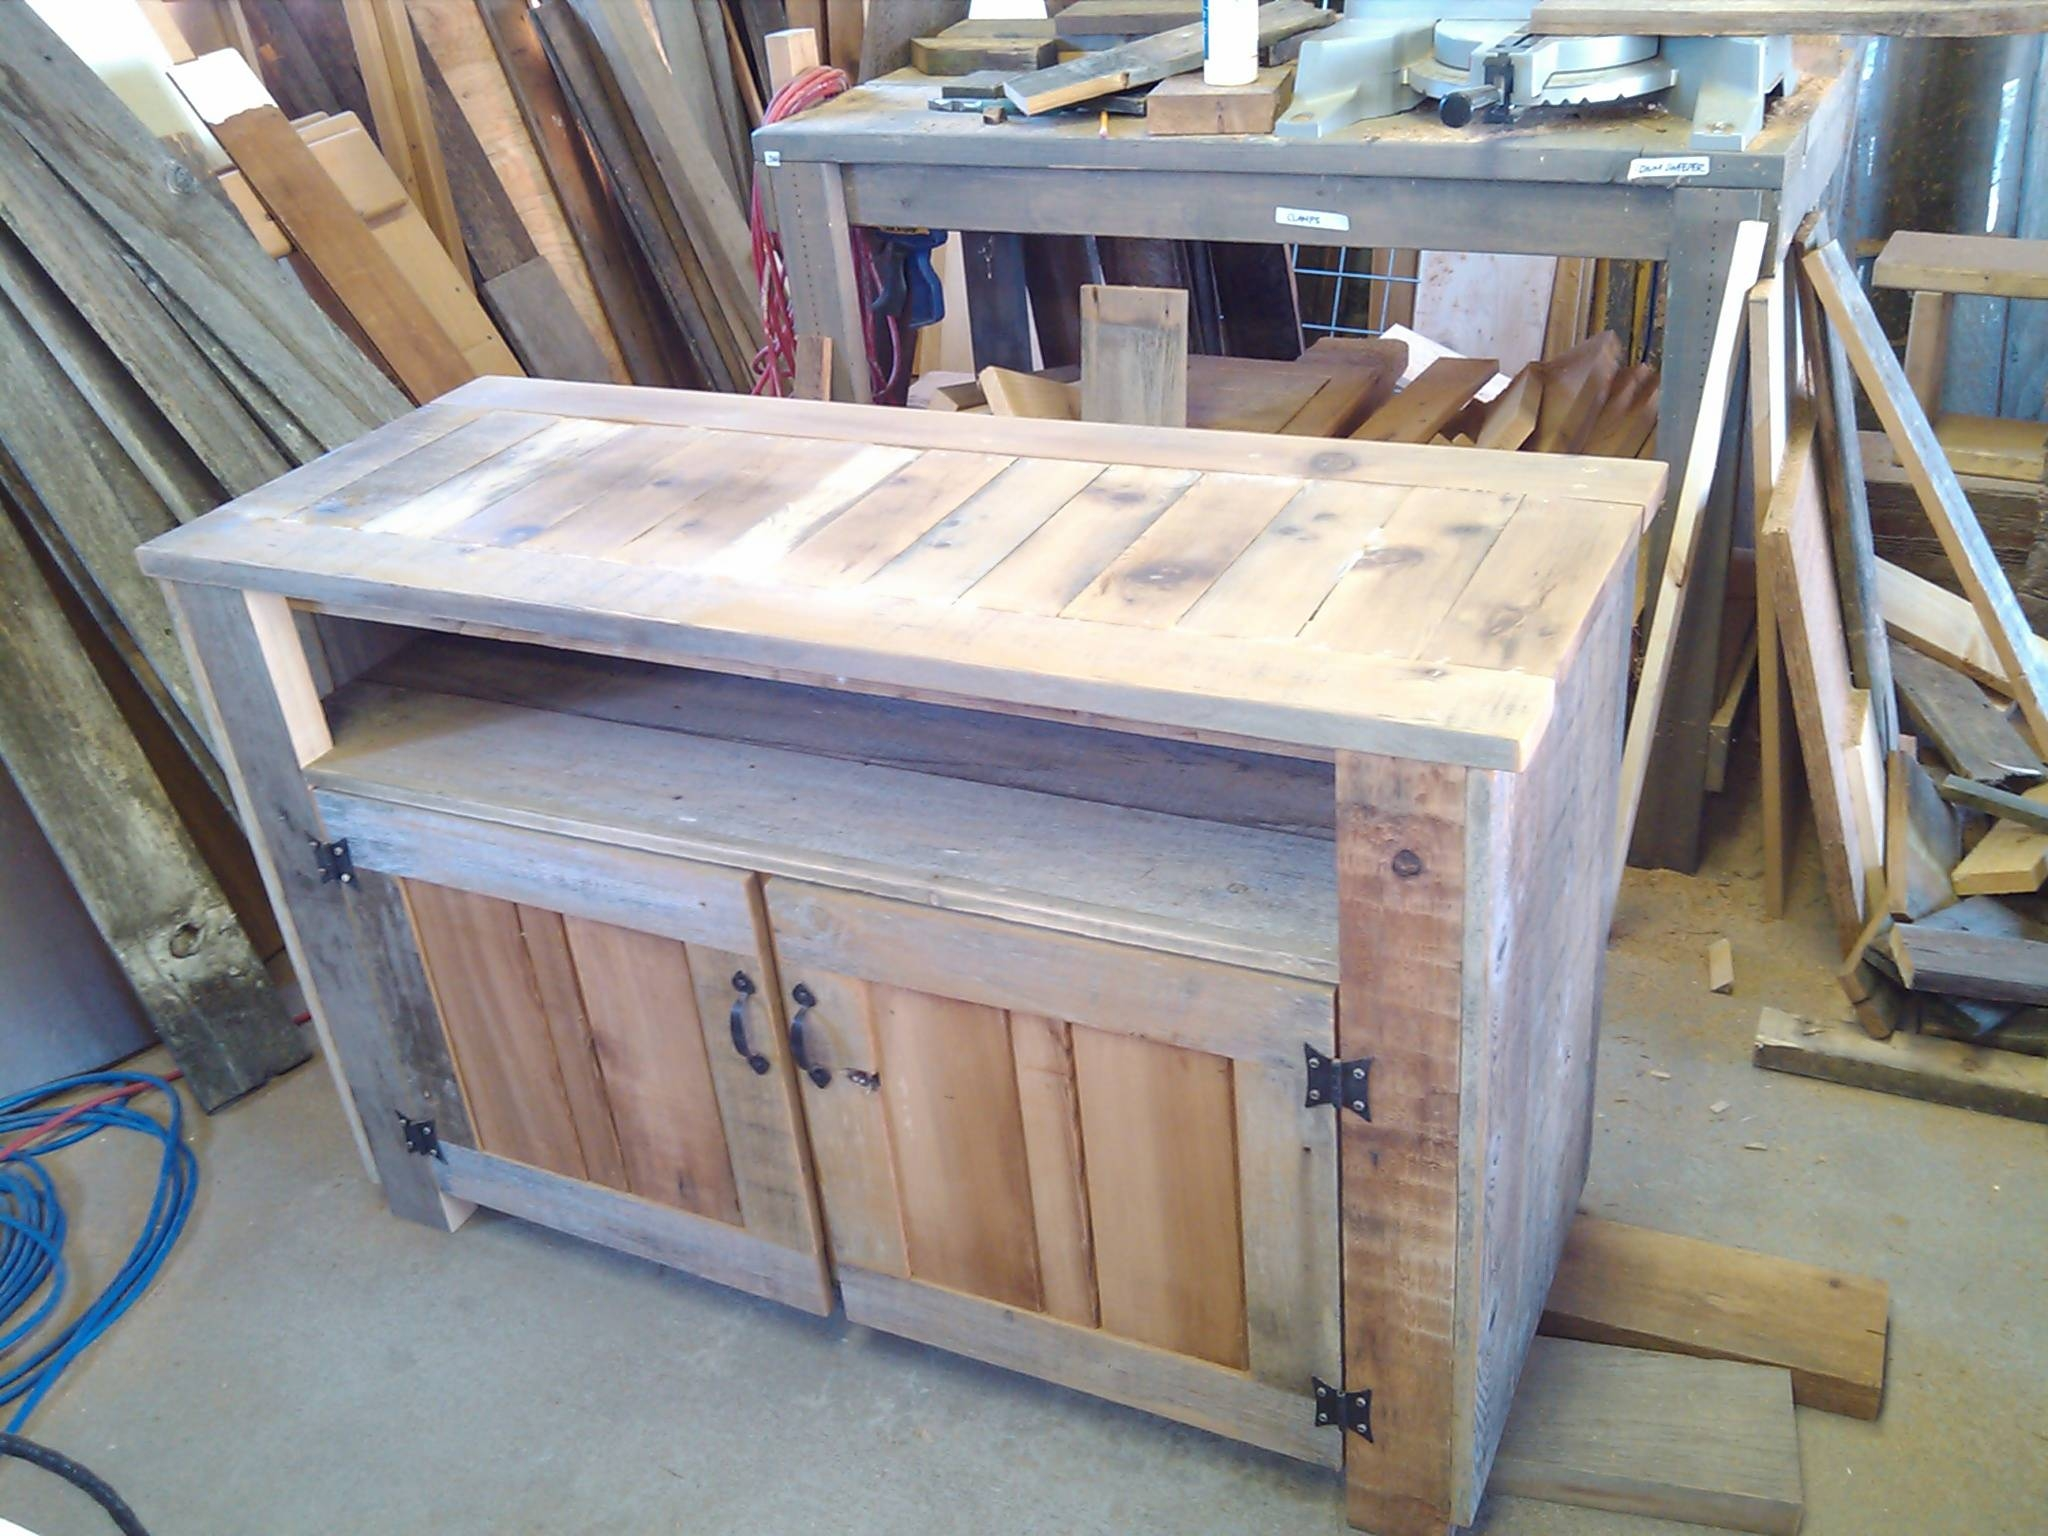 Rustic Tv Stand Or Cabinet | Dream Garden Woodworks Inside Rustic Tv Stands (View 12 of 15)